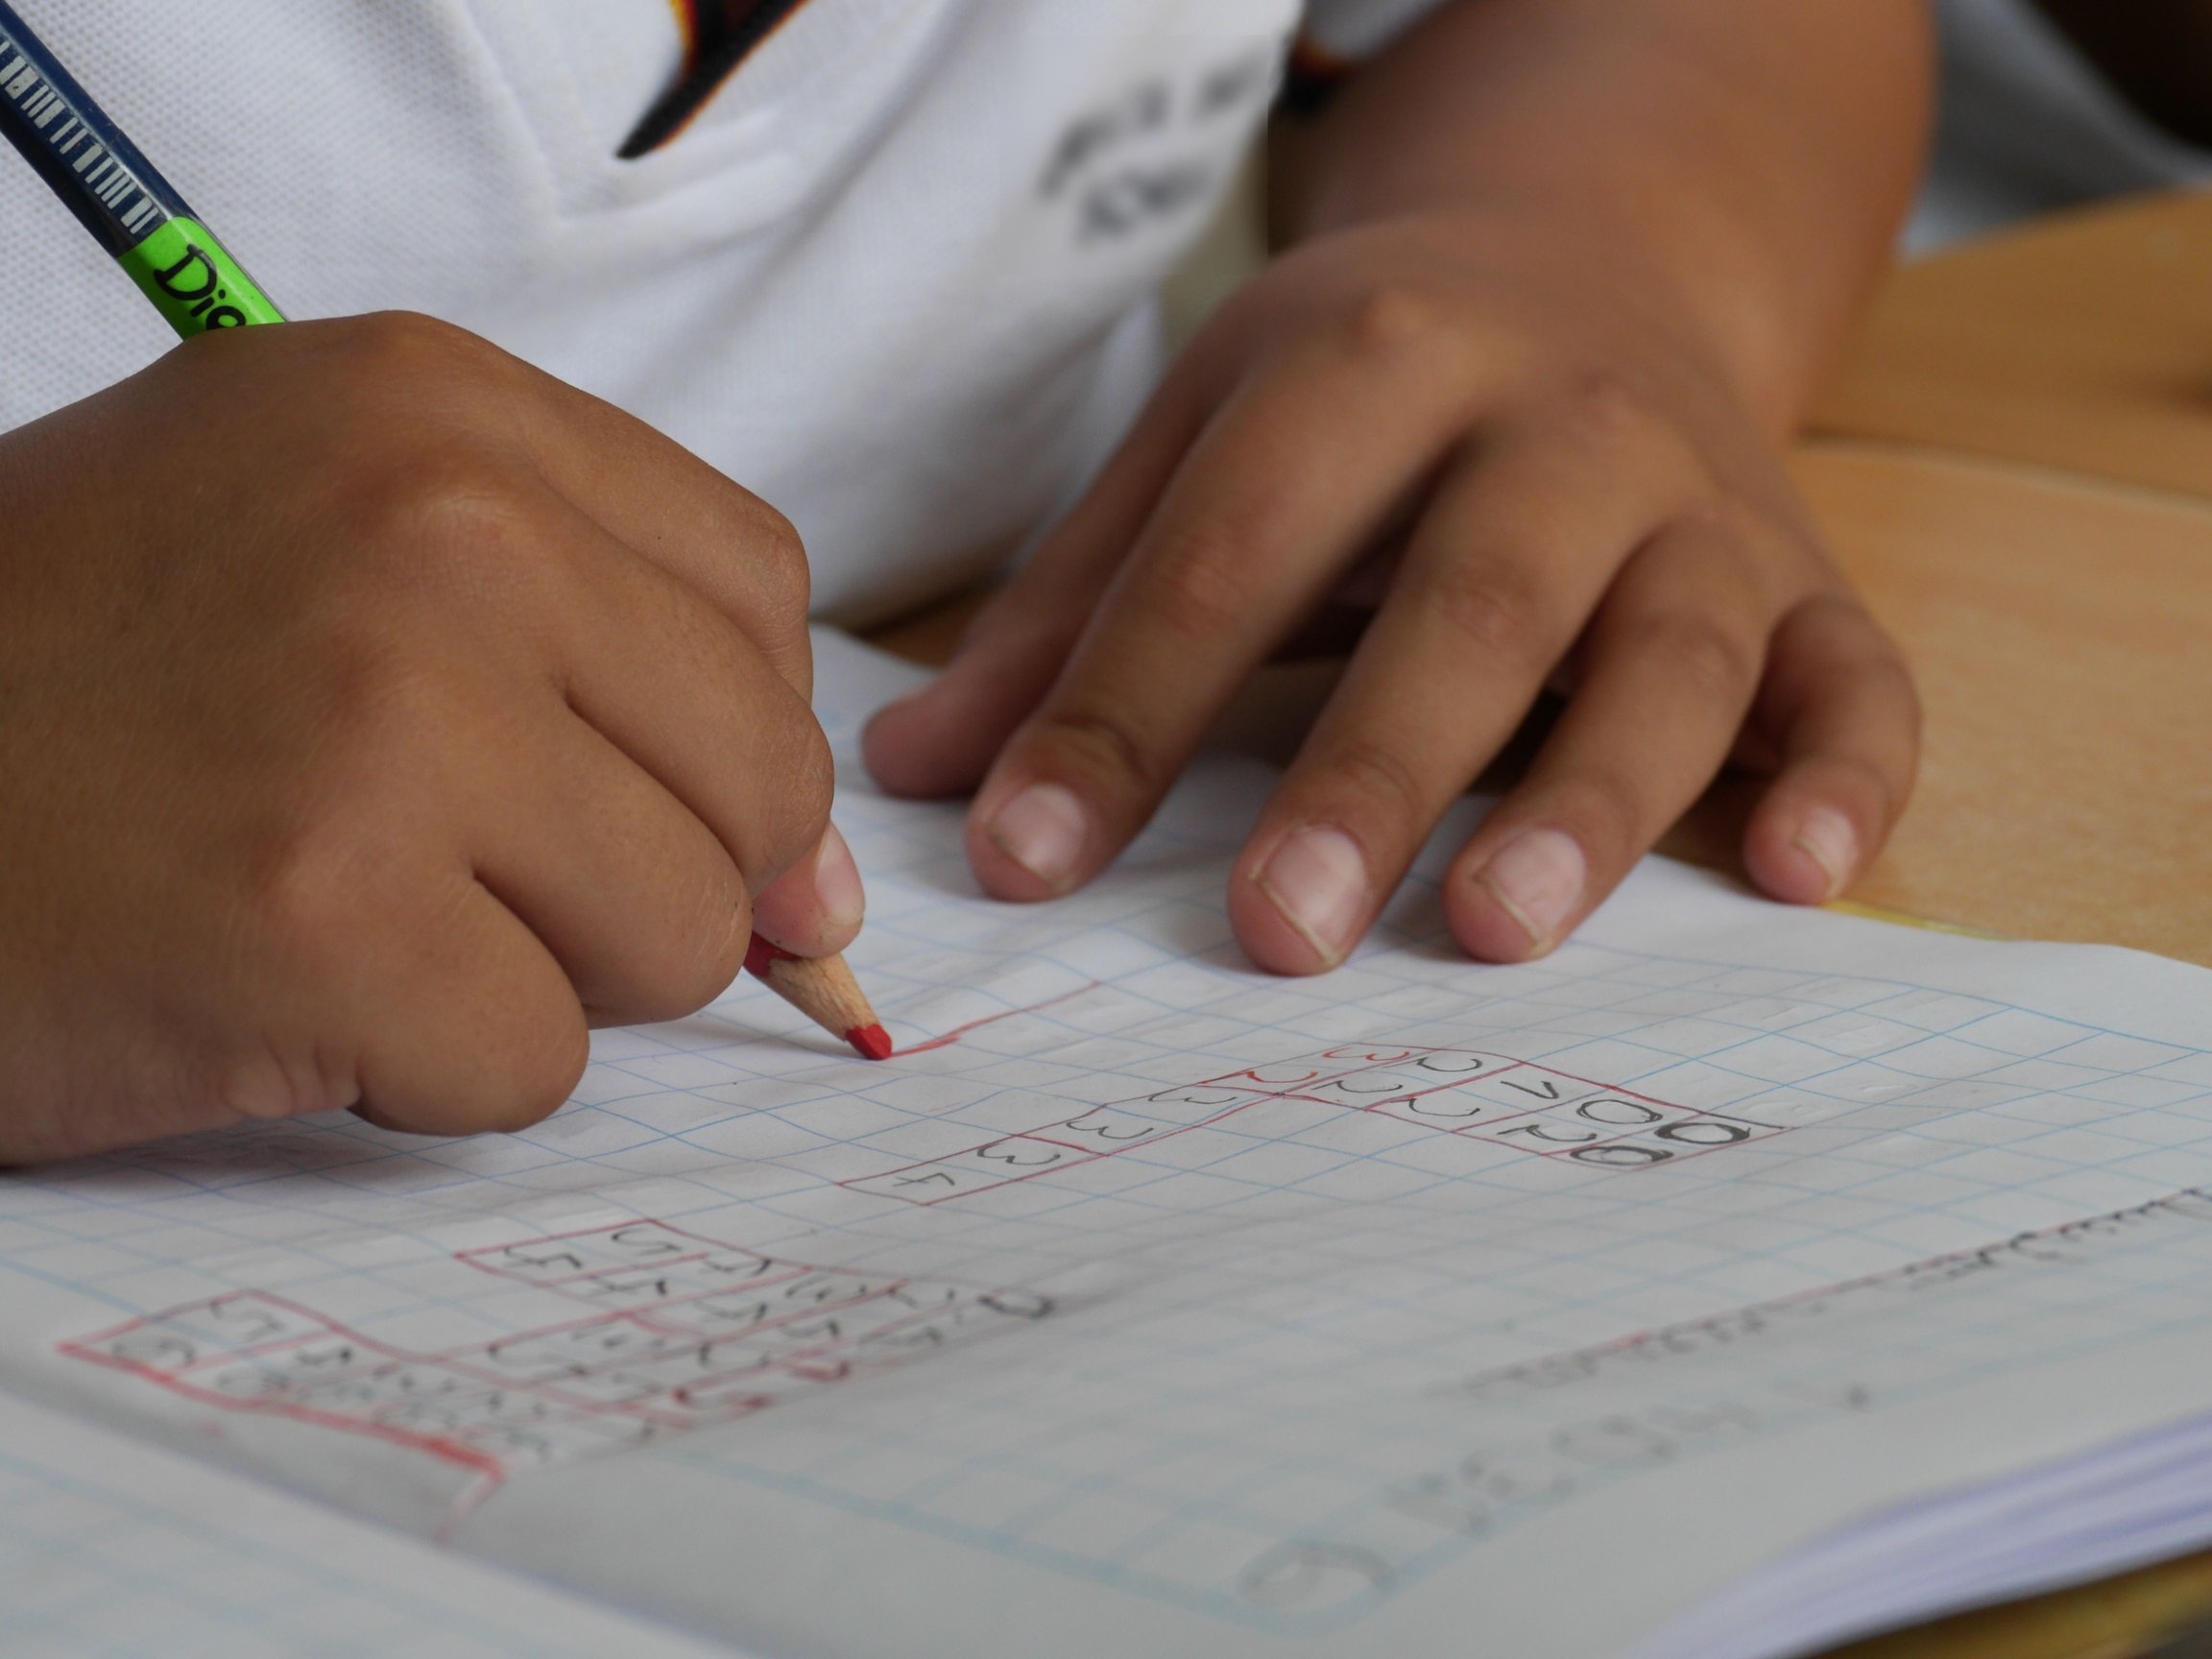 Teaching math: 'We have lost sight of the need for balance' says director of education